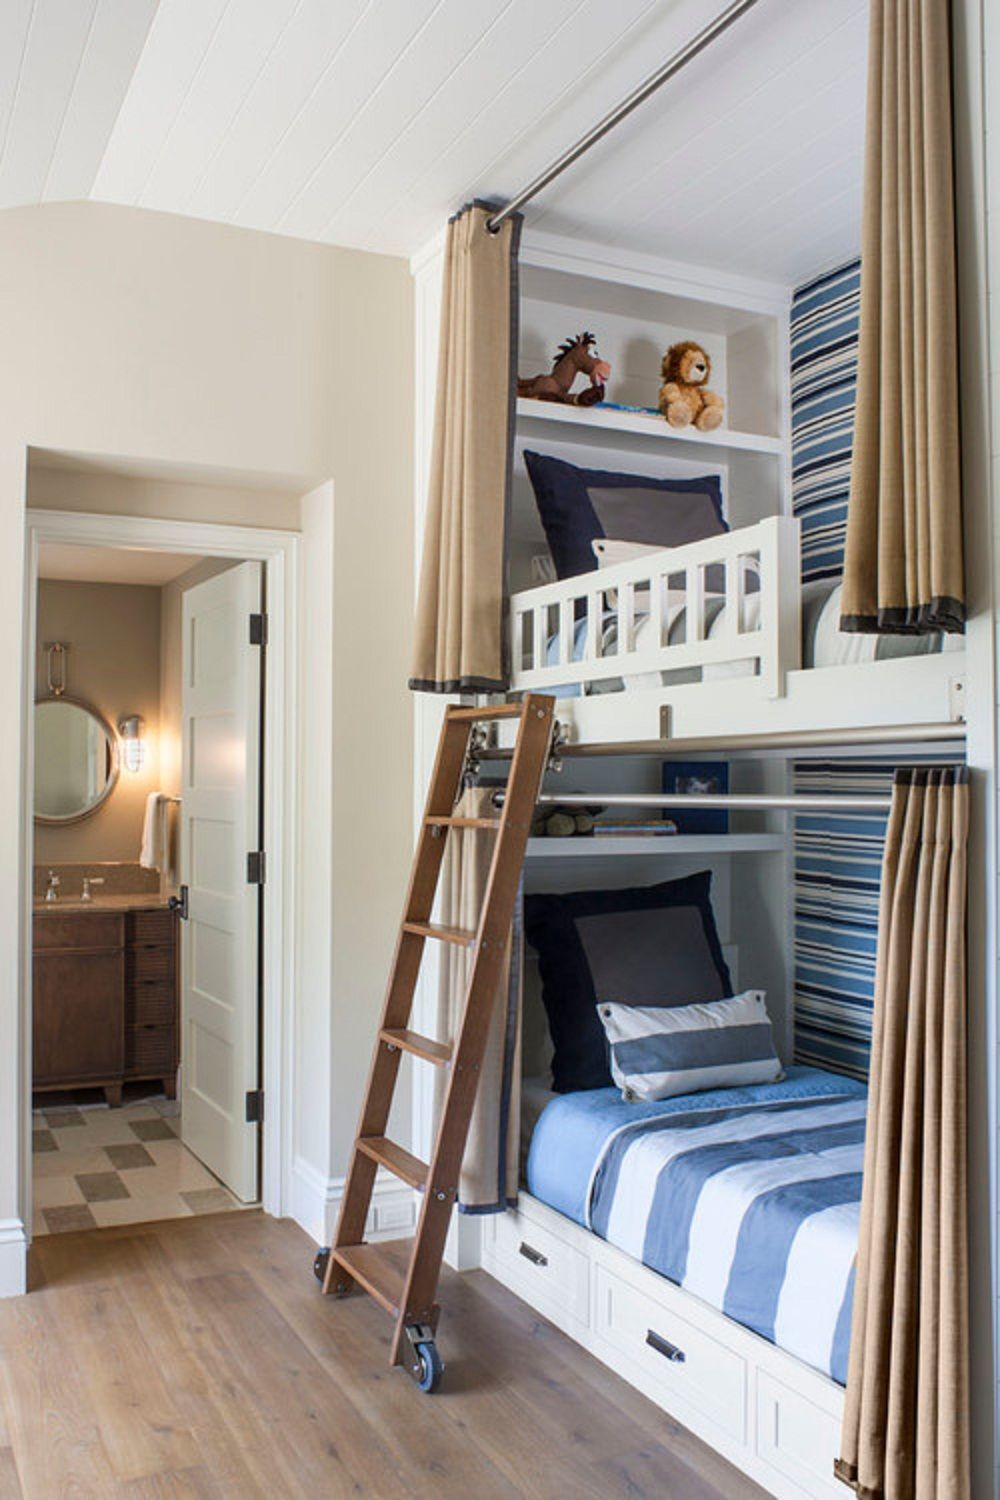 10 Best Bunk Beds For Kids And Teens With Storage Design Ideas